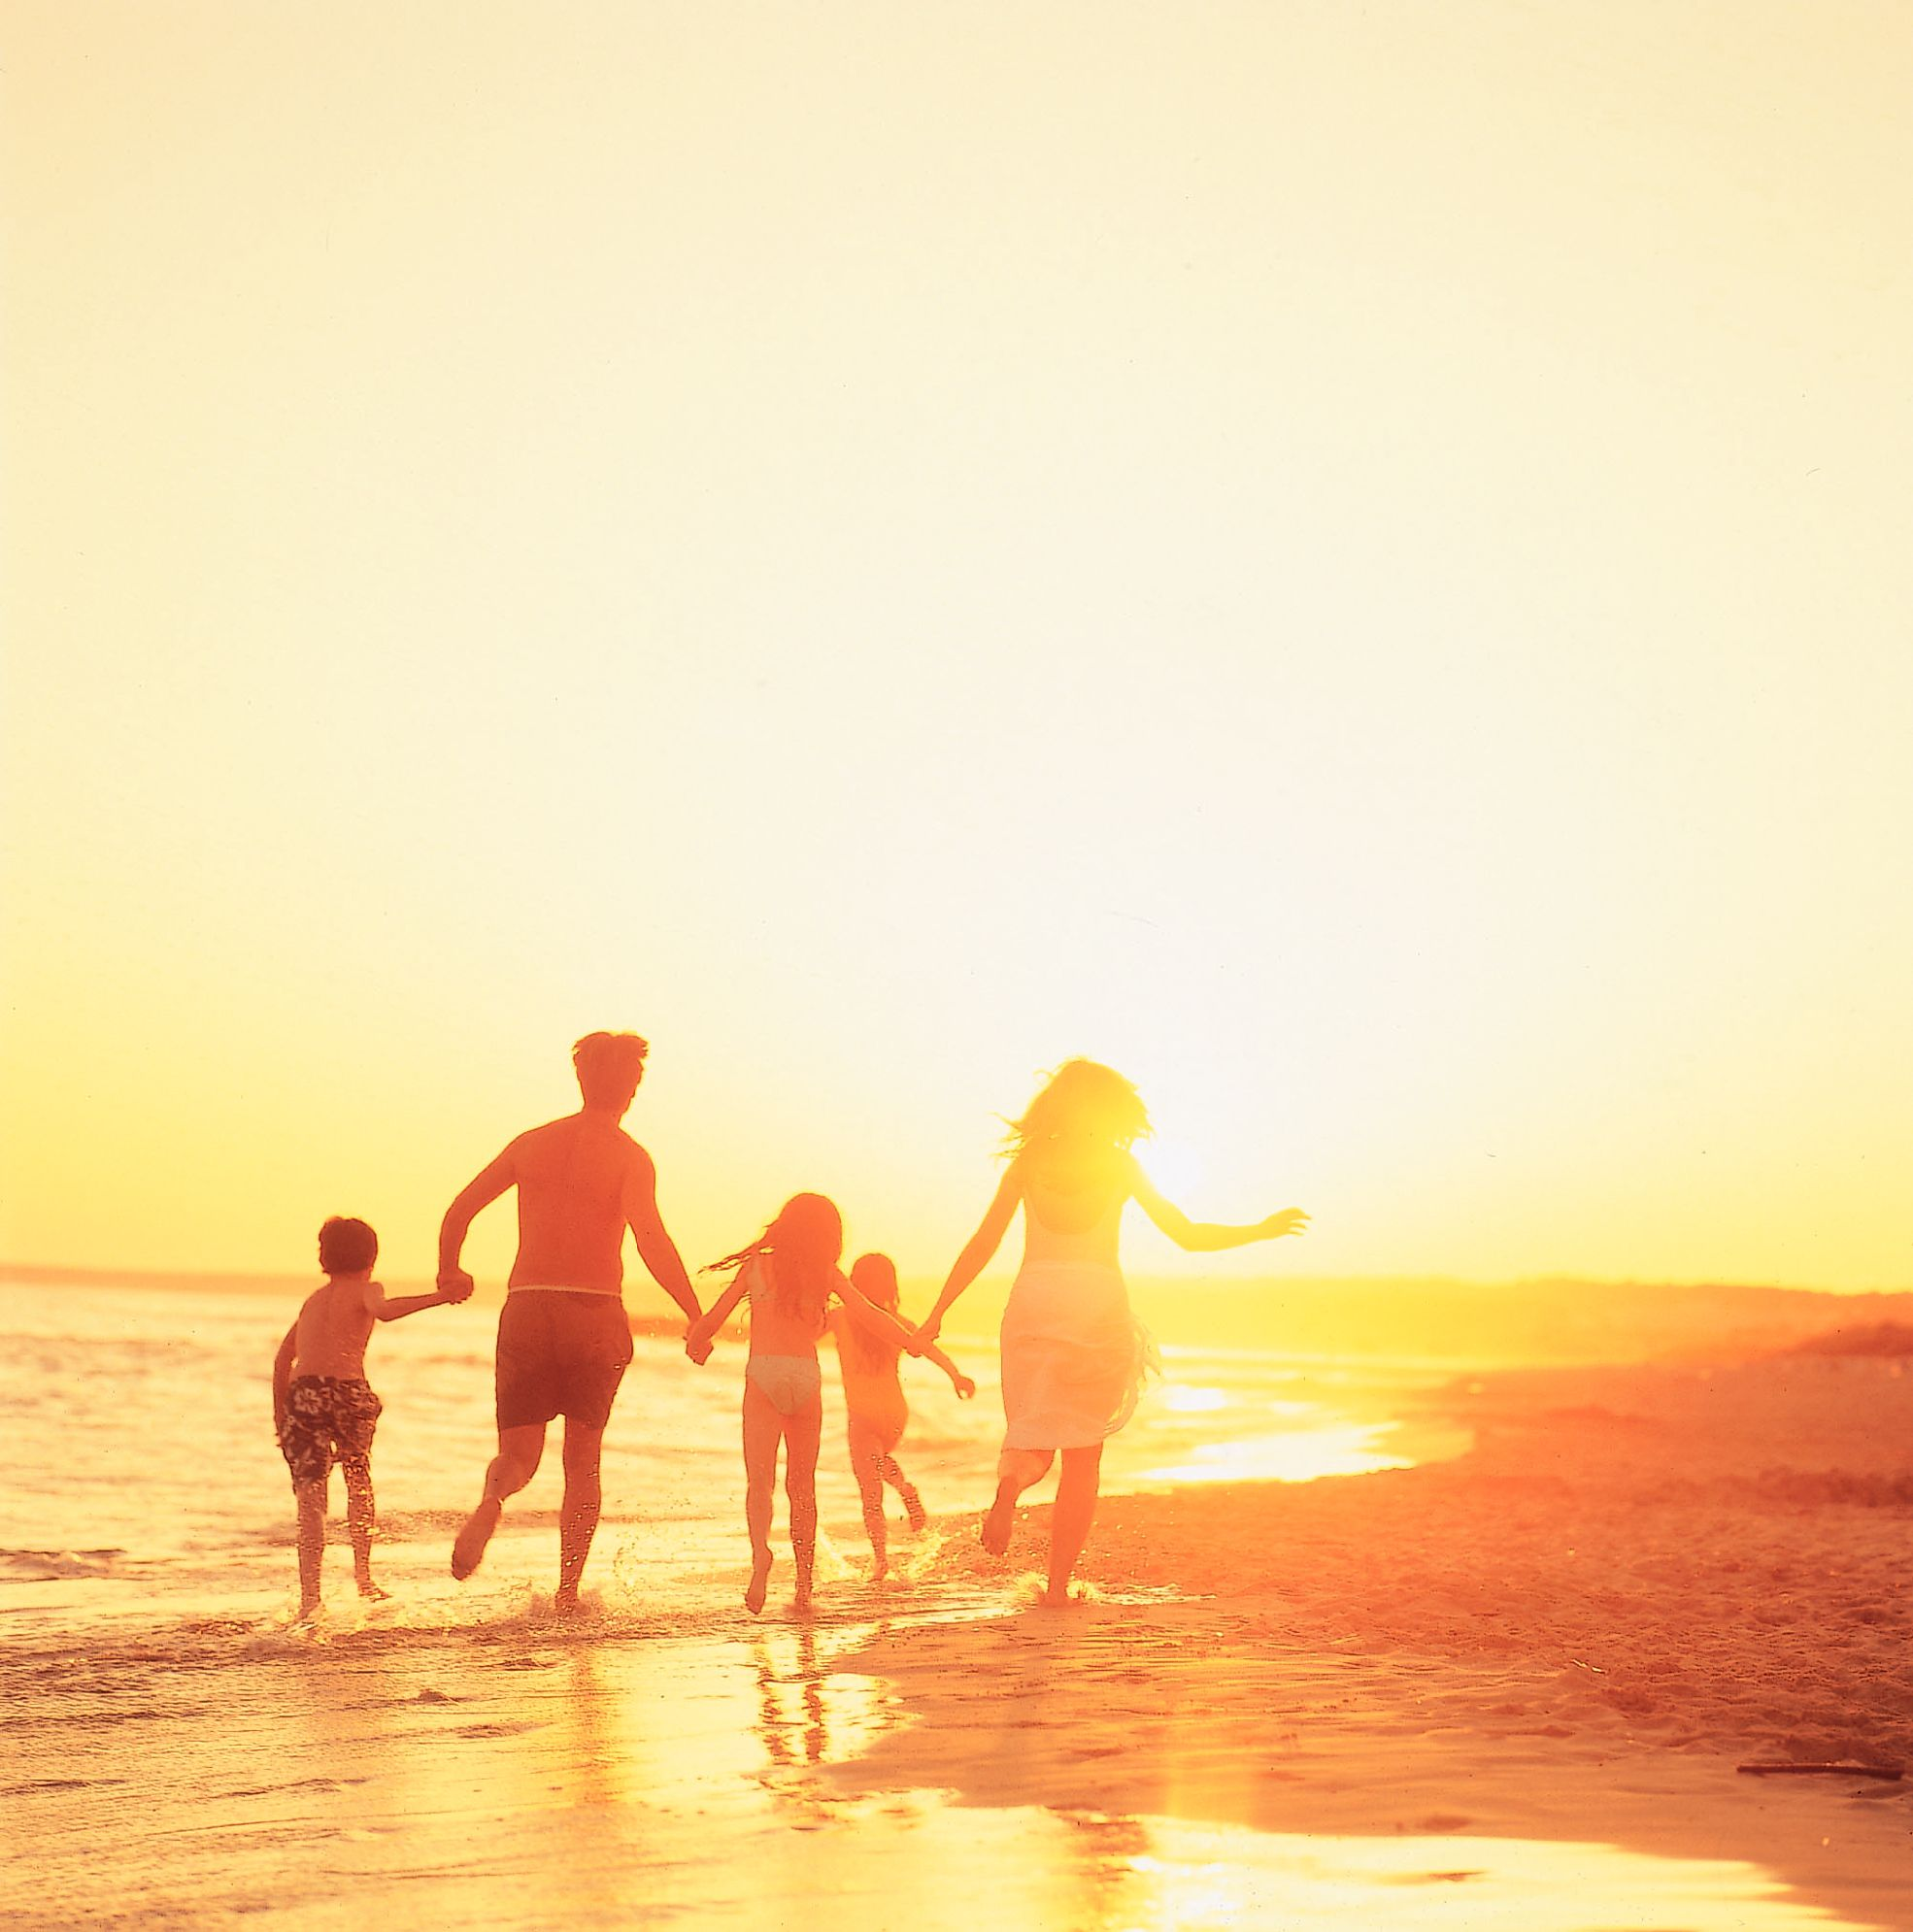 Every family deserves a beach break in the Summer both